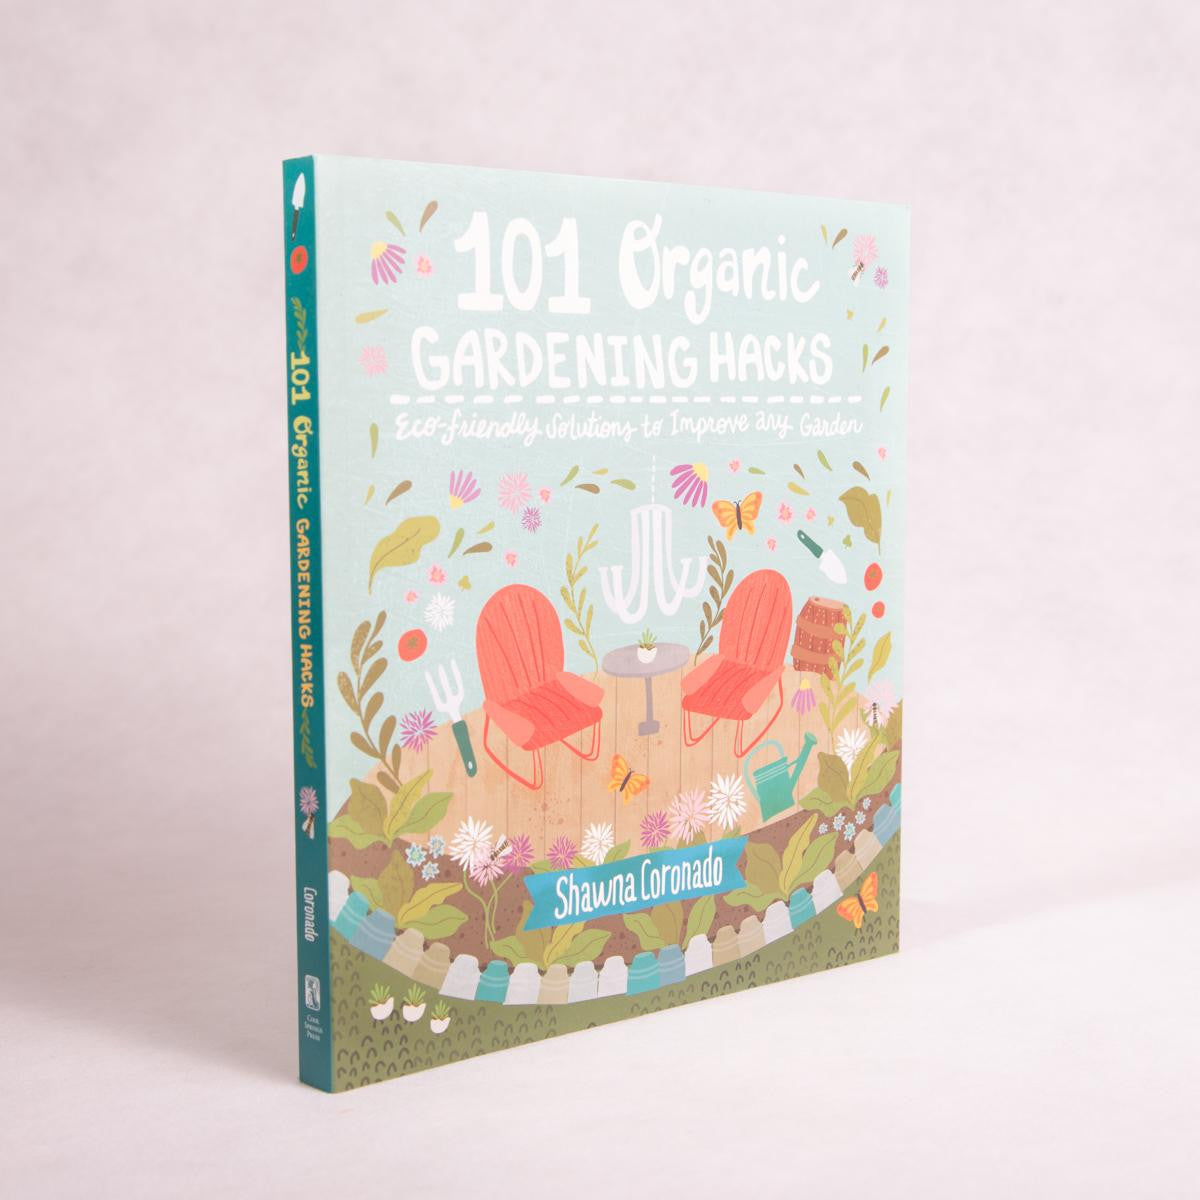 101 Organic Gardening Hacks | By Shawna Coronado - Book - Throw Some Seeds - Australian gardening gifts and eco products online!